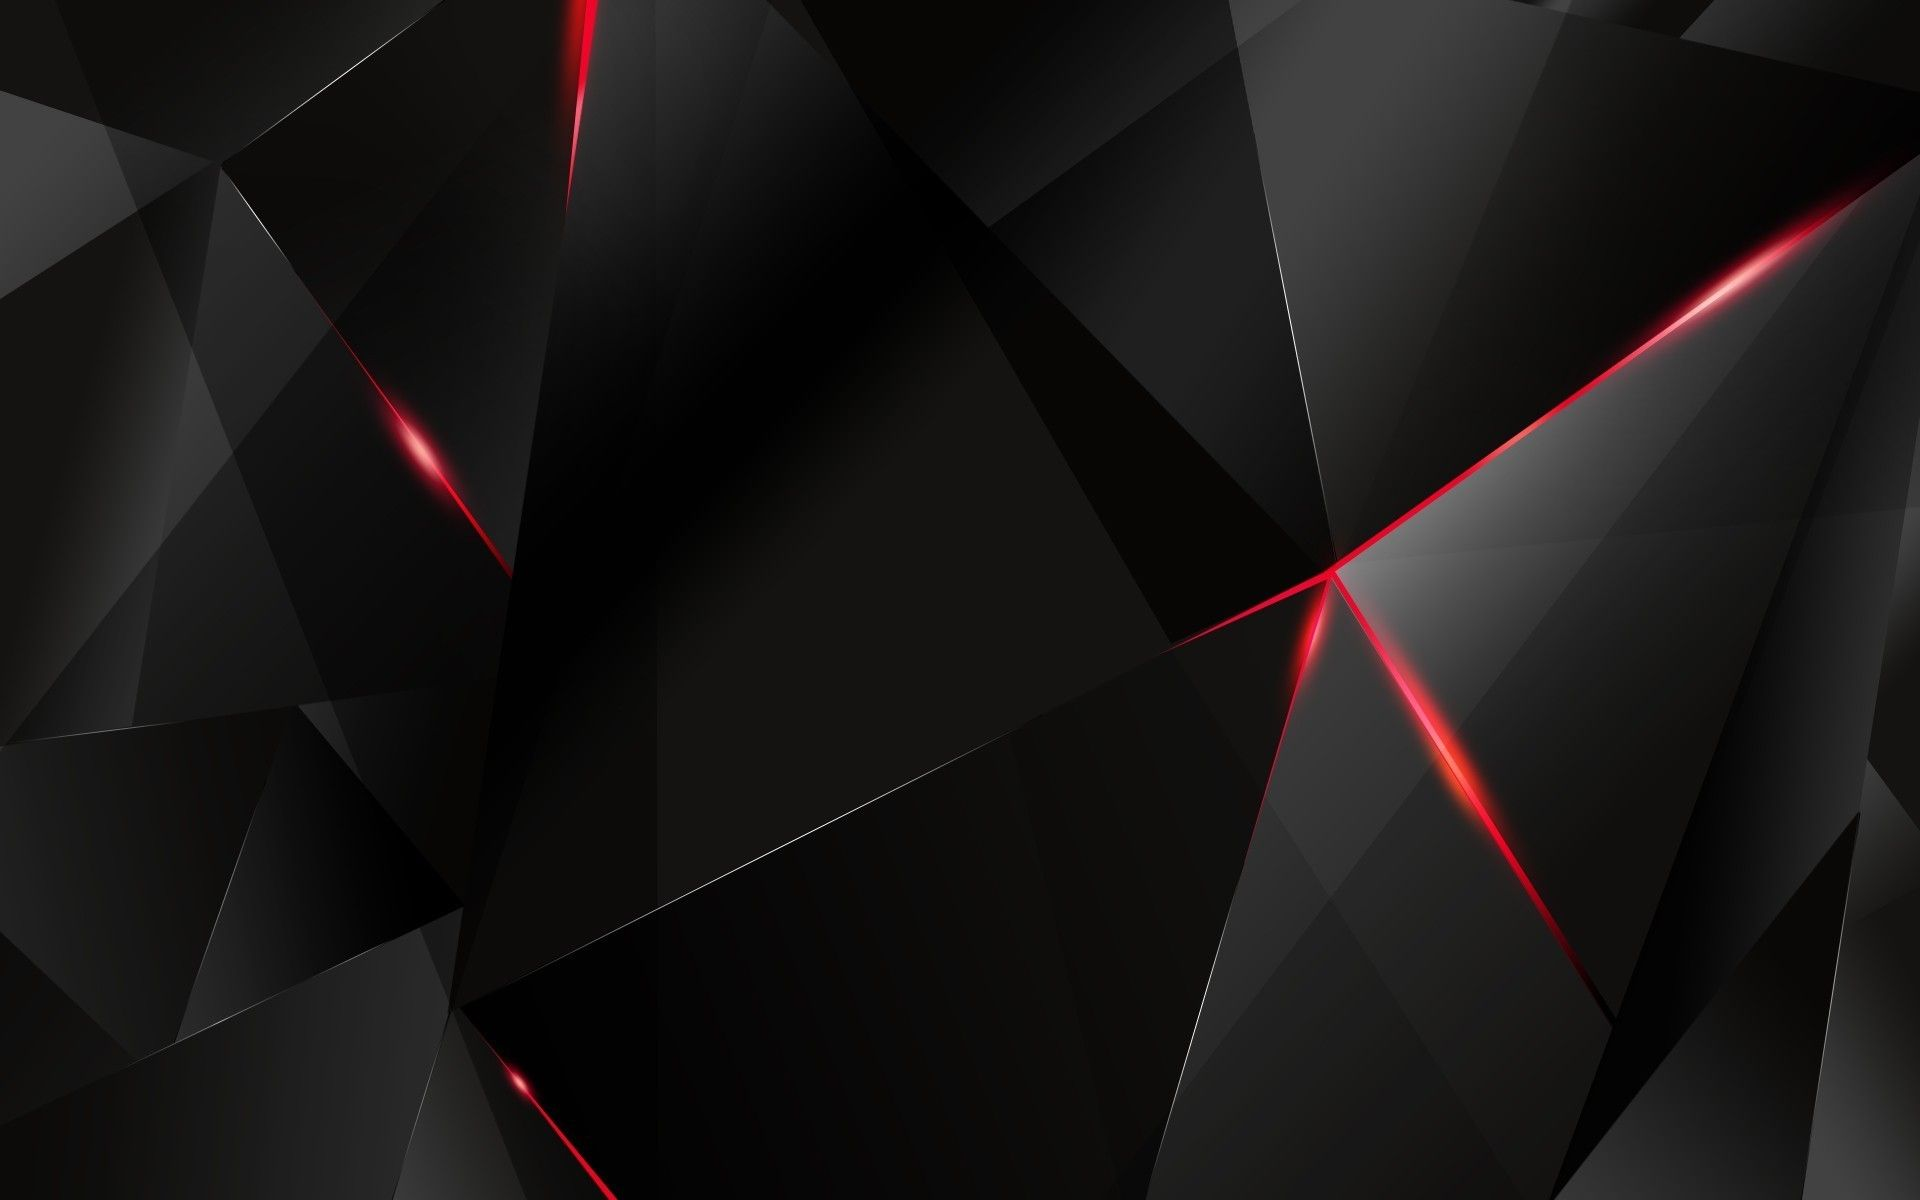 black-polygon-with-red-edges-abstract-hd-wallpaper-1920x1200-1202.jpg